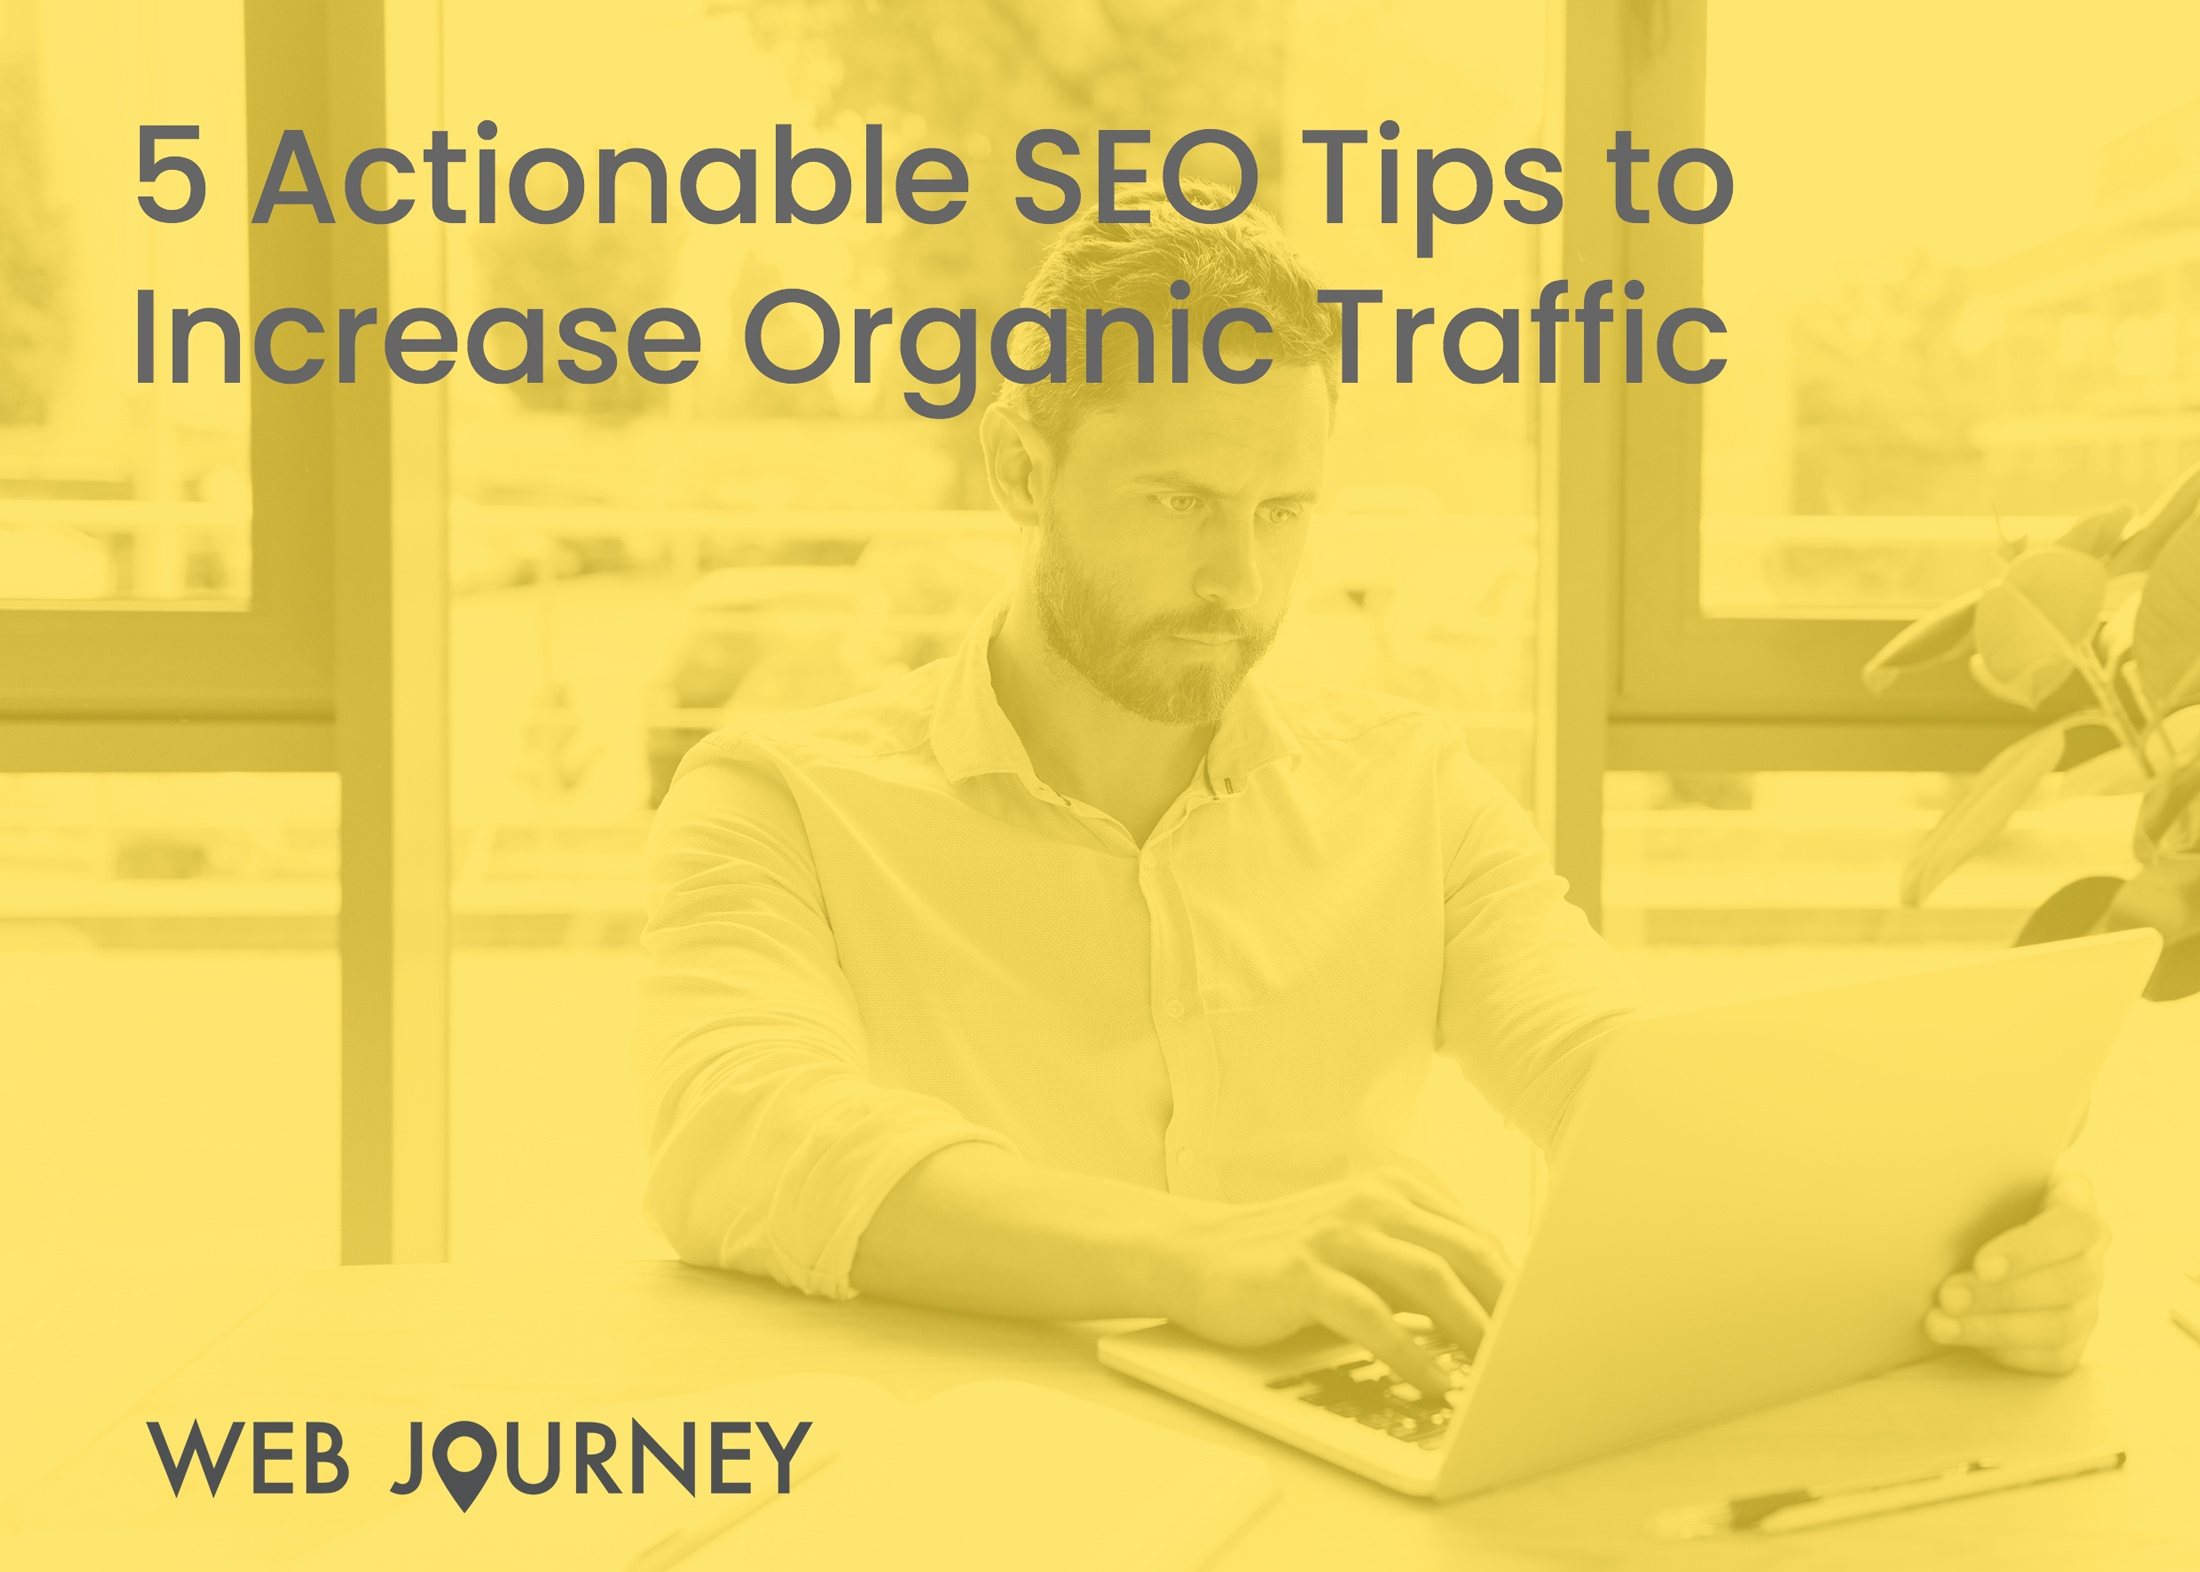 Web-Journey-Blog-5-Actionable-SEO-Tips-To-Increase-Organic-Traffic